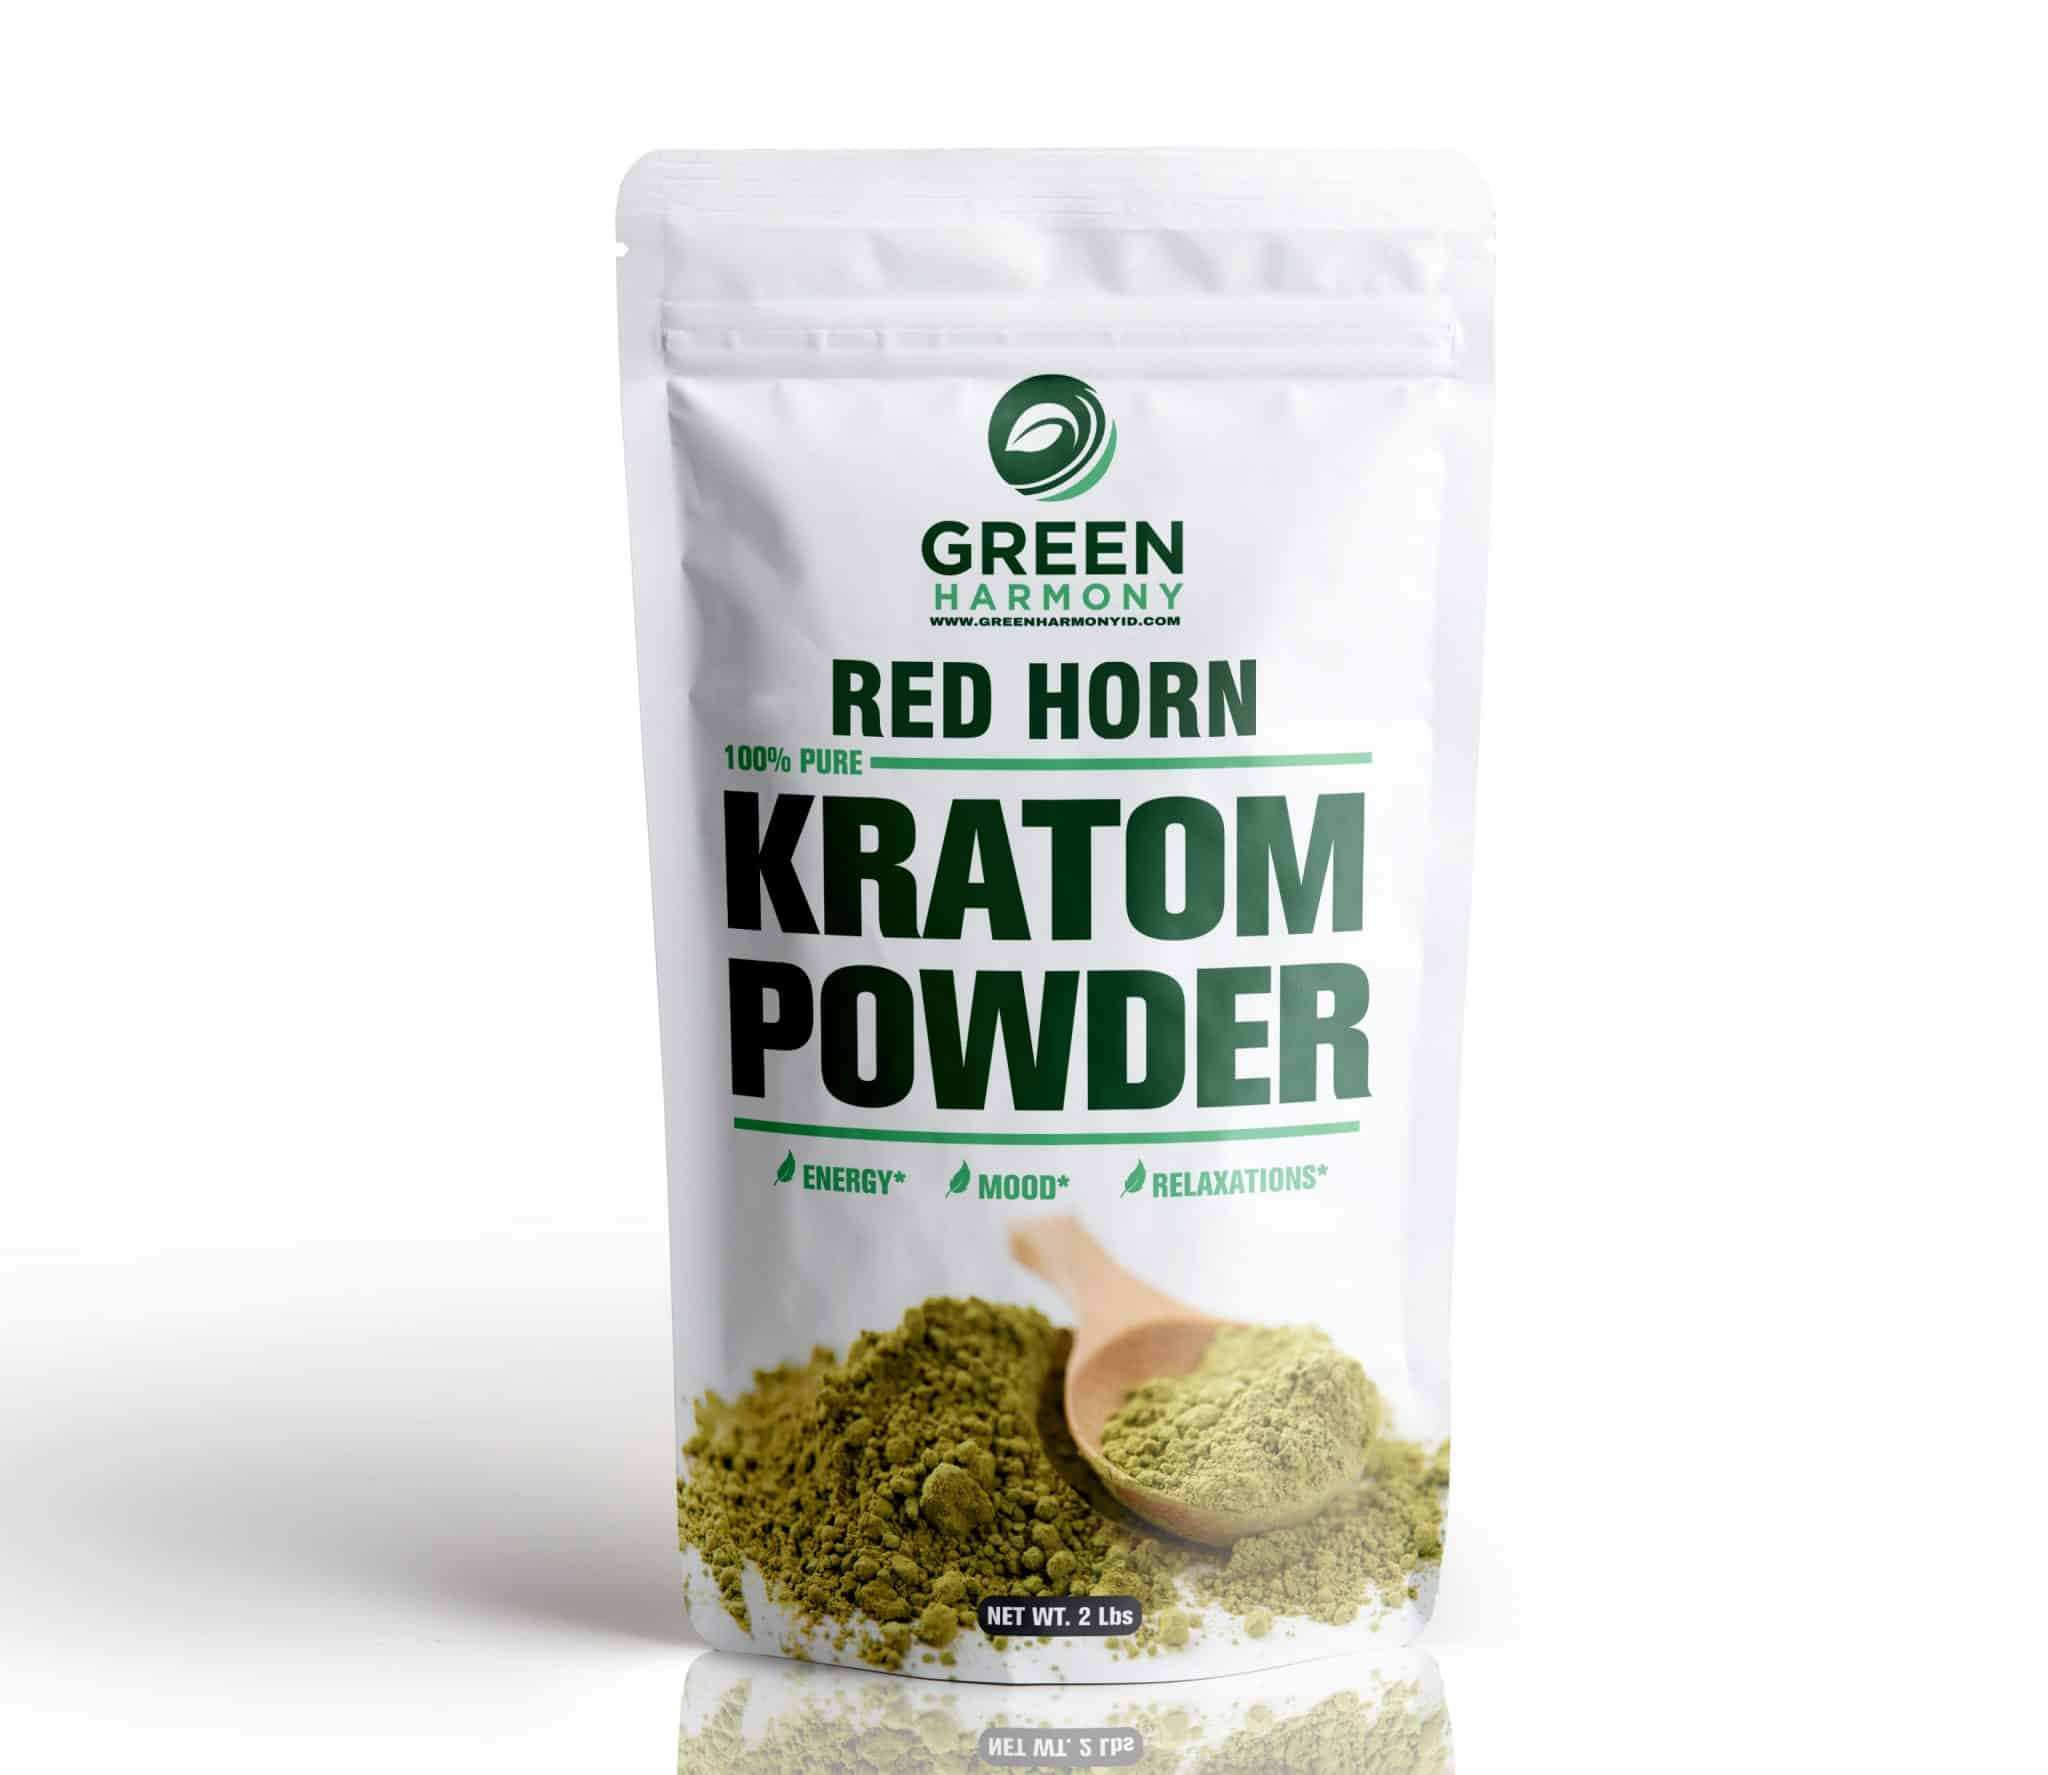 RED-HORN Unique Effect And Benefits The Red Horn Kratom Powder